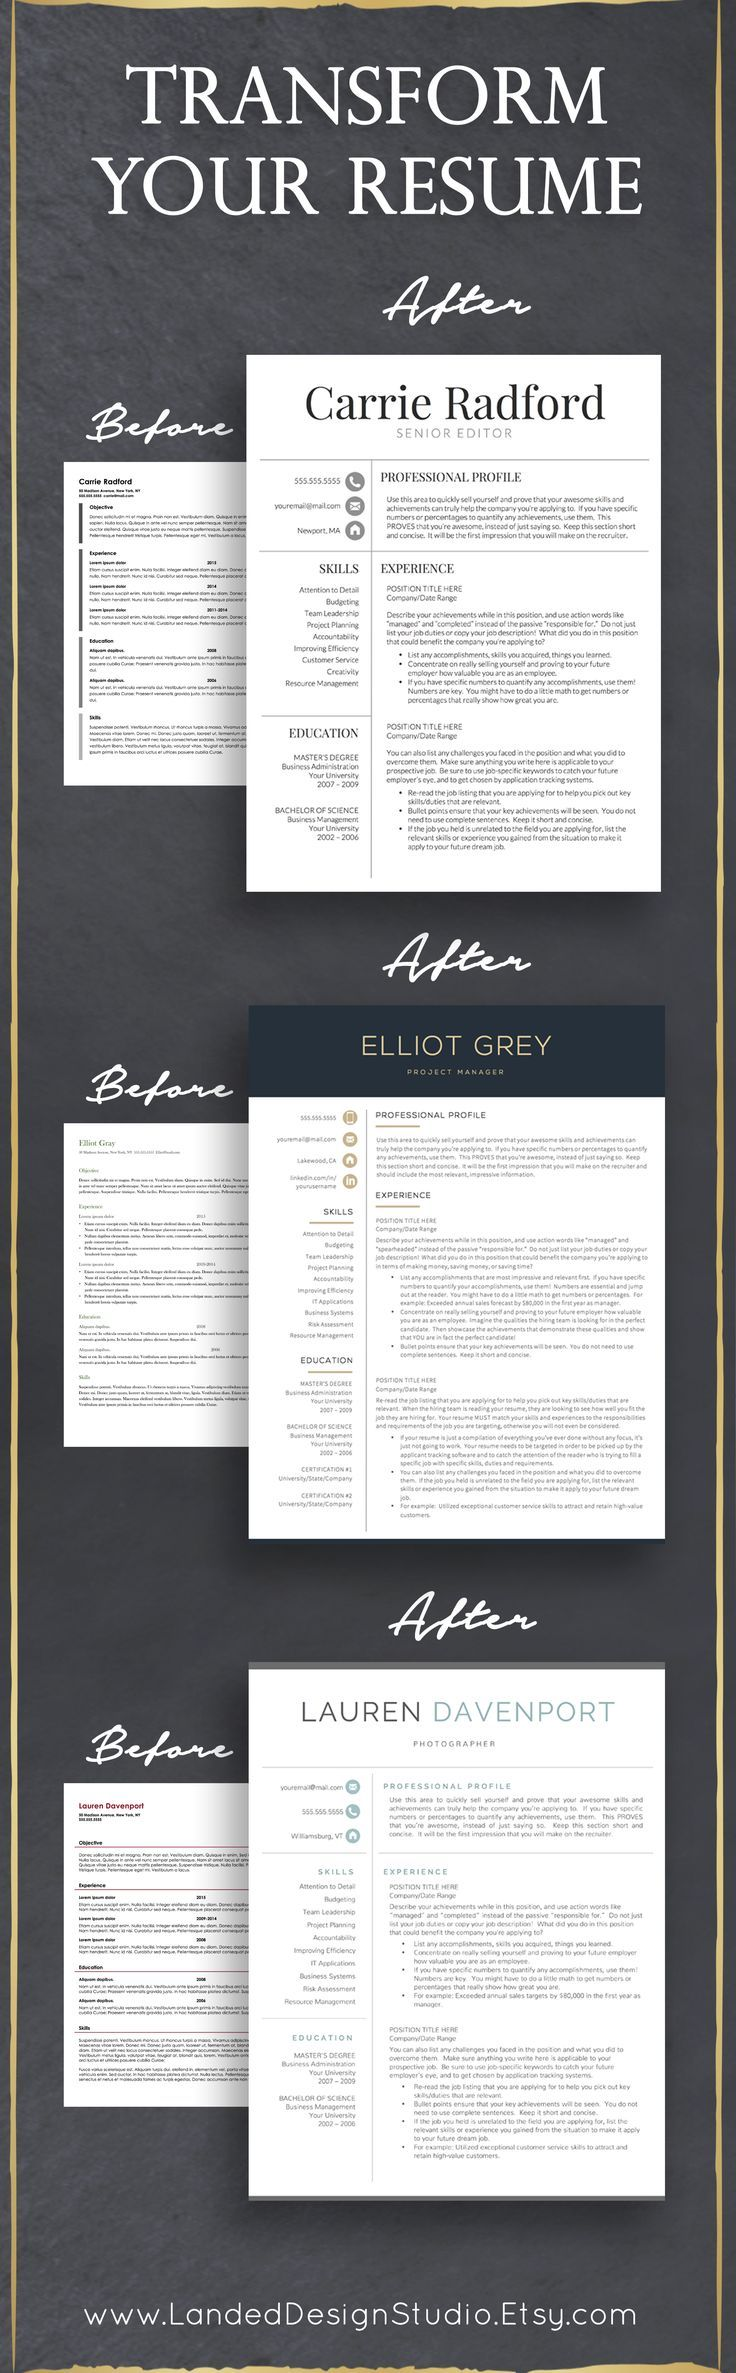 How To Write Your Resume Education Section Yellow Listing Education On Your  Resume Free Resume Samples Jobscan